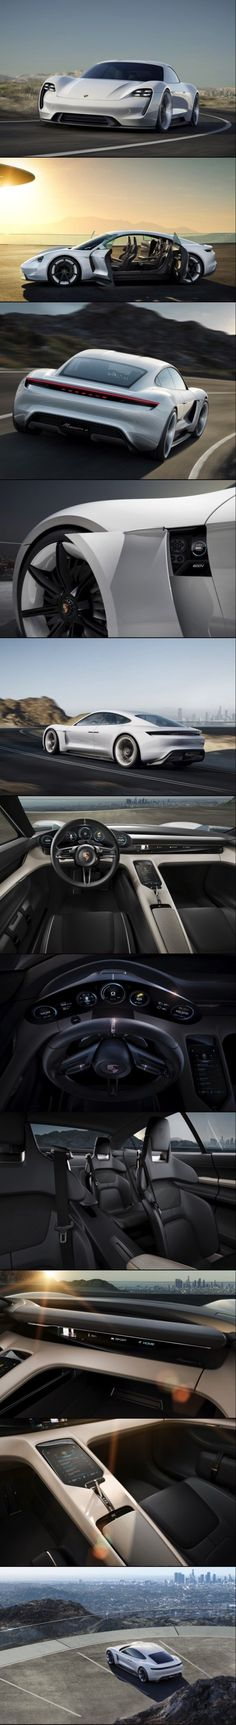 Cool Porsche 2017: Porsche Is On a Mission With Their New Electric Powered Concept... Go fast cars